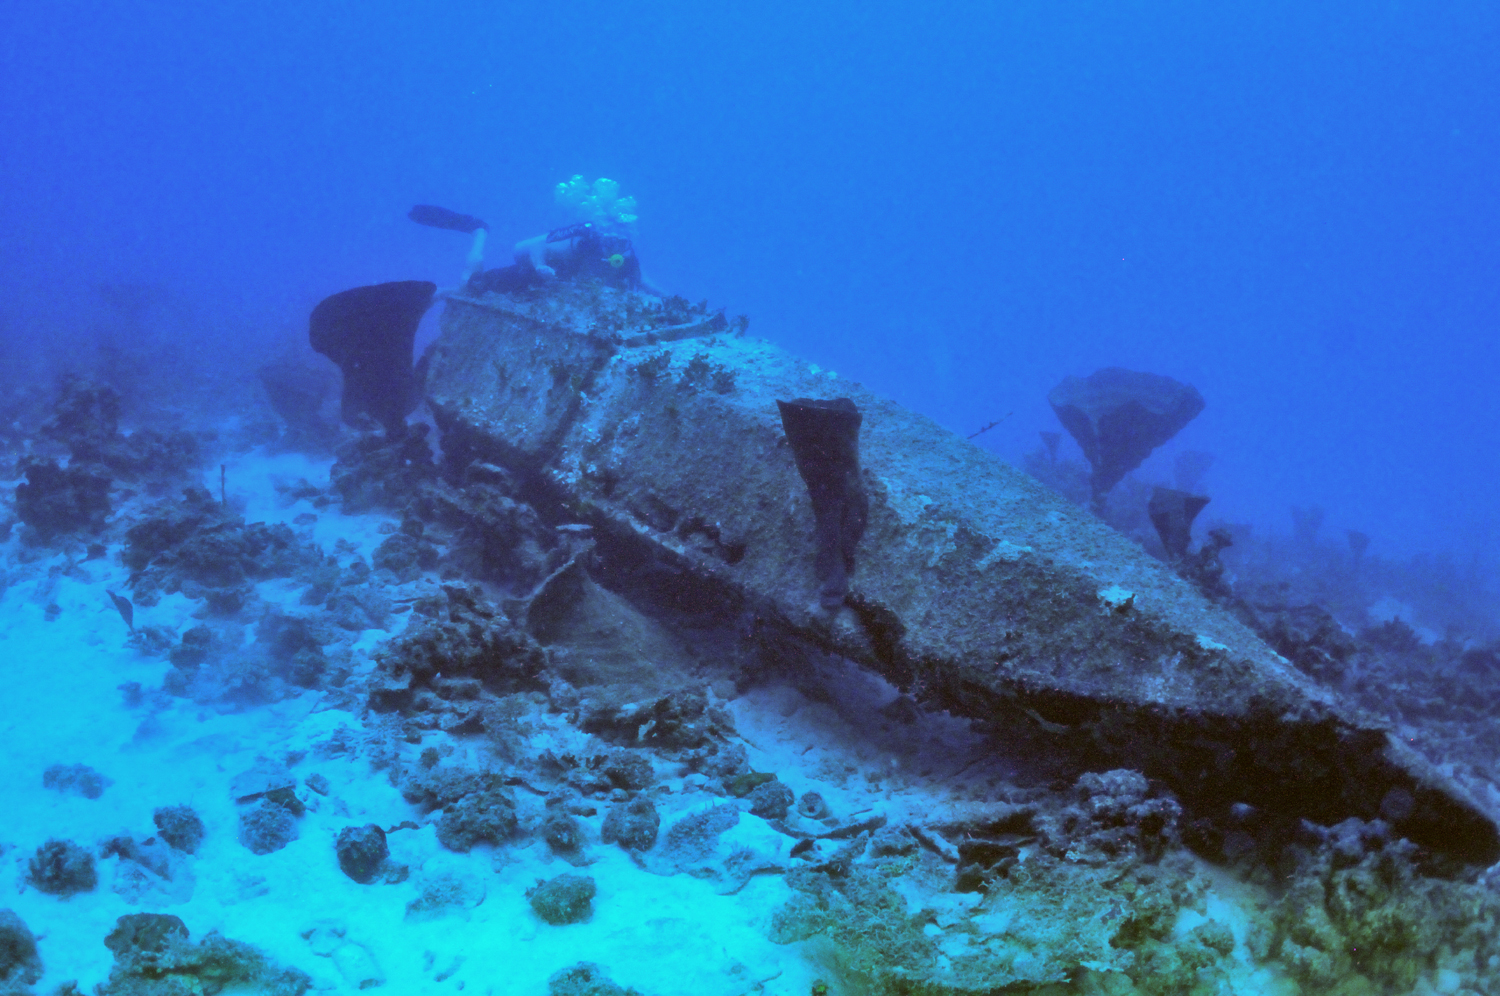 Float from the Jake #1 wreck